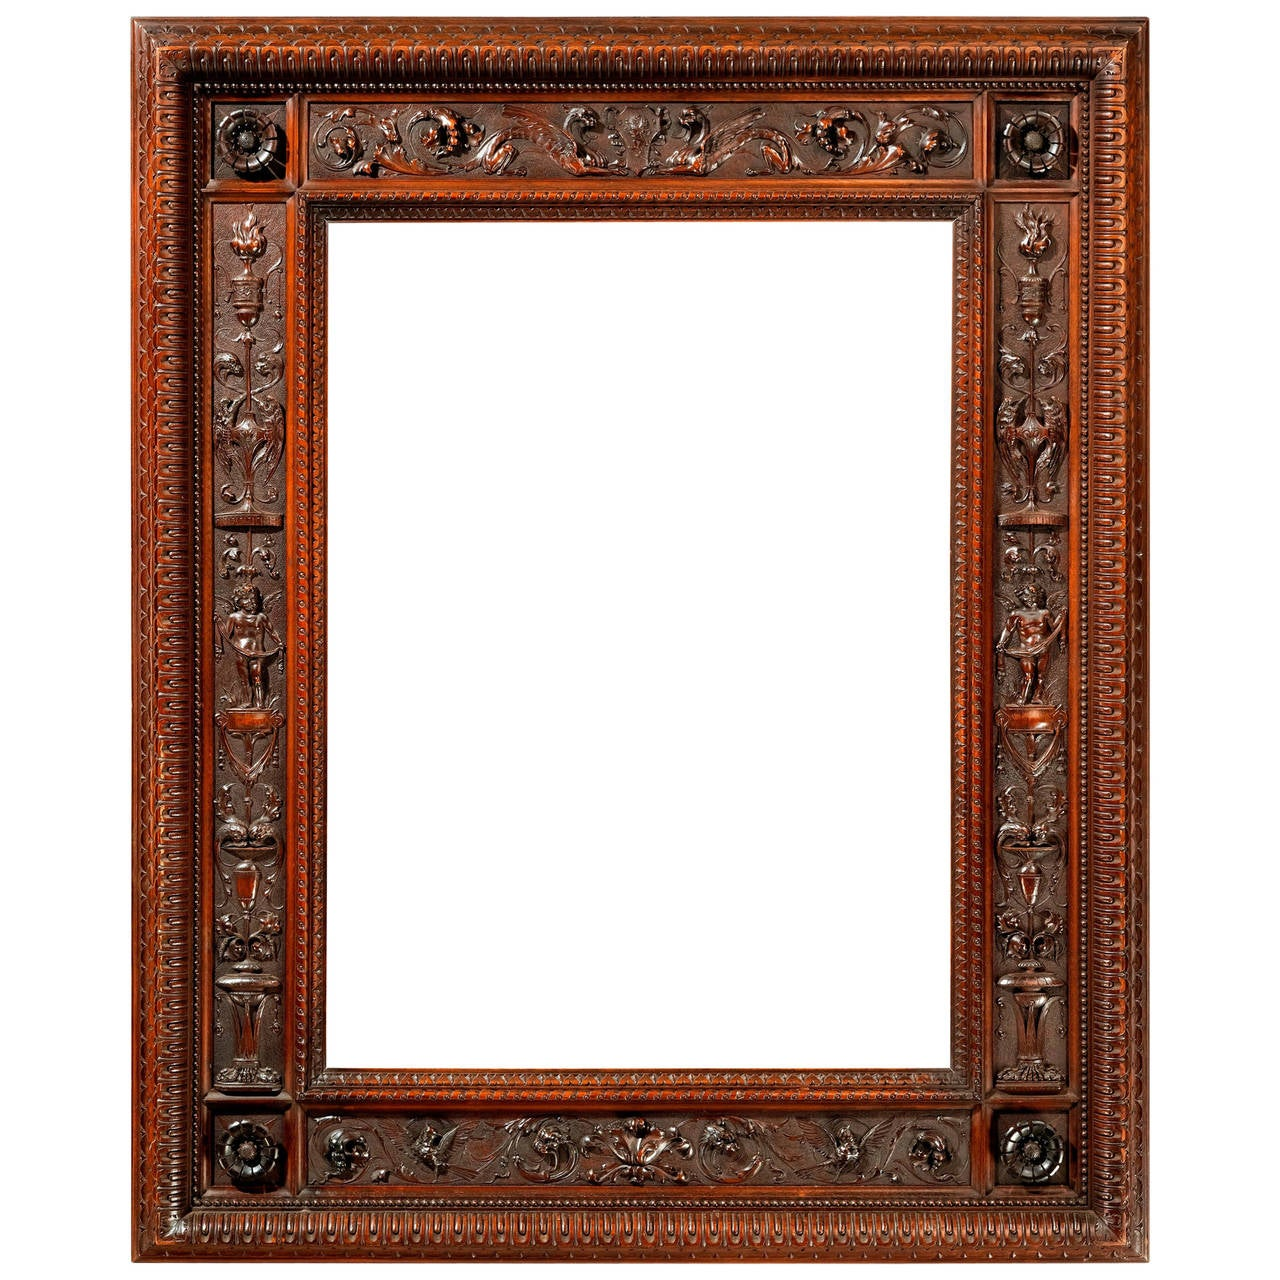 19th century carved frame in the manner of mariano coppede for sale at 1stdibs. Black Bedroom Furniture Sets. Home Design Ideas